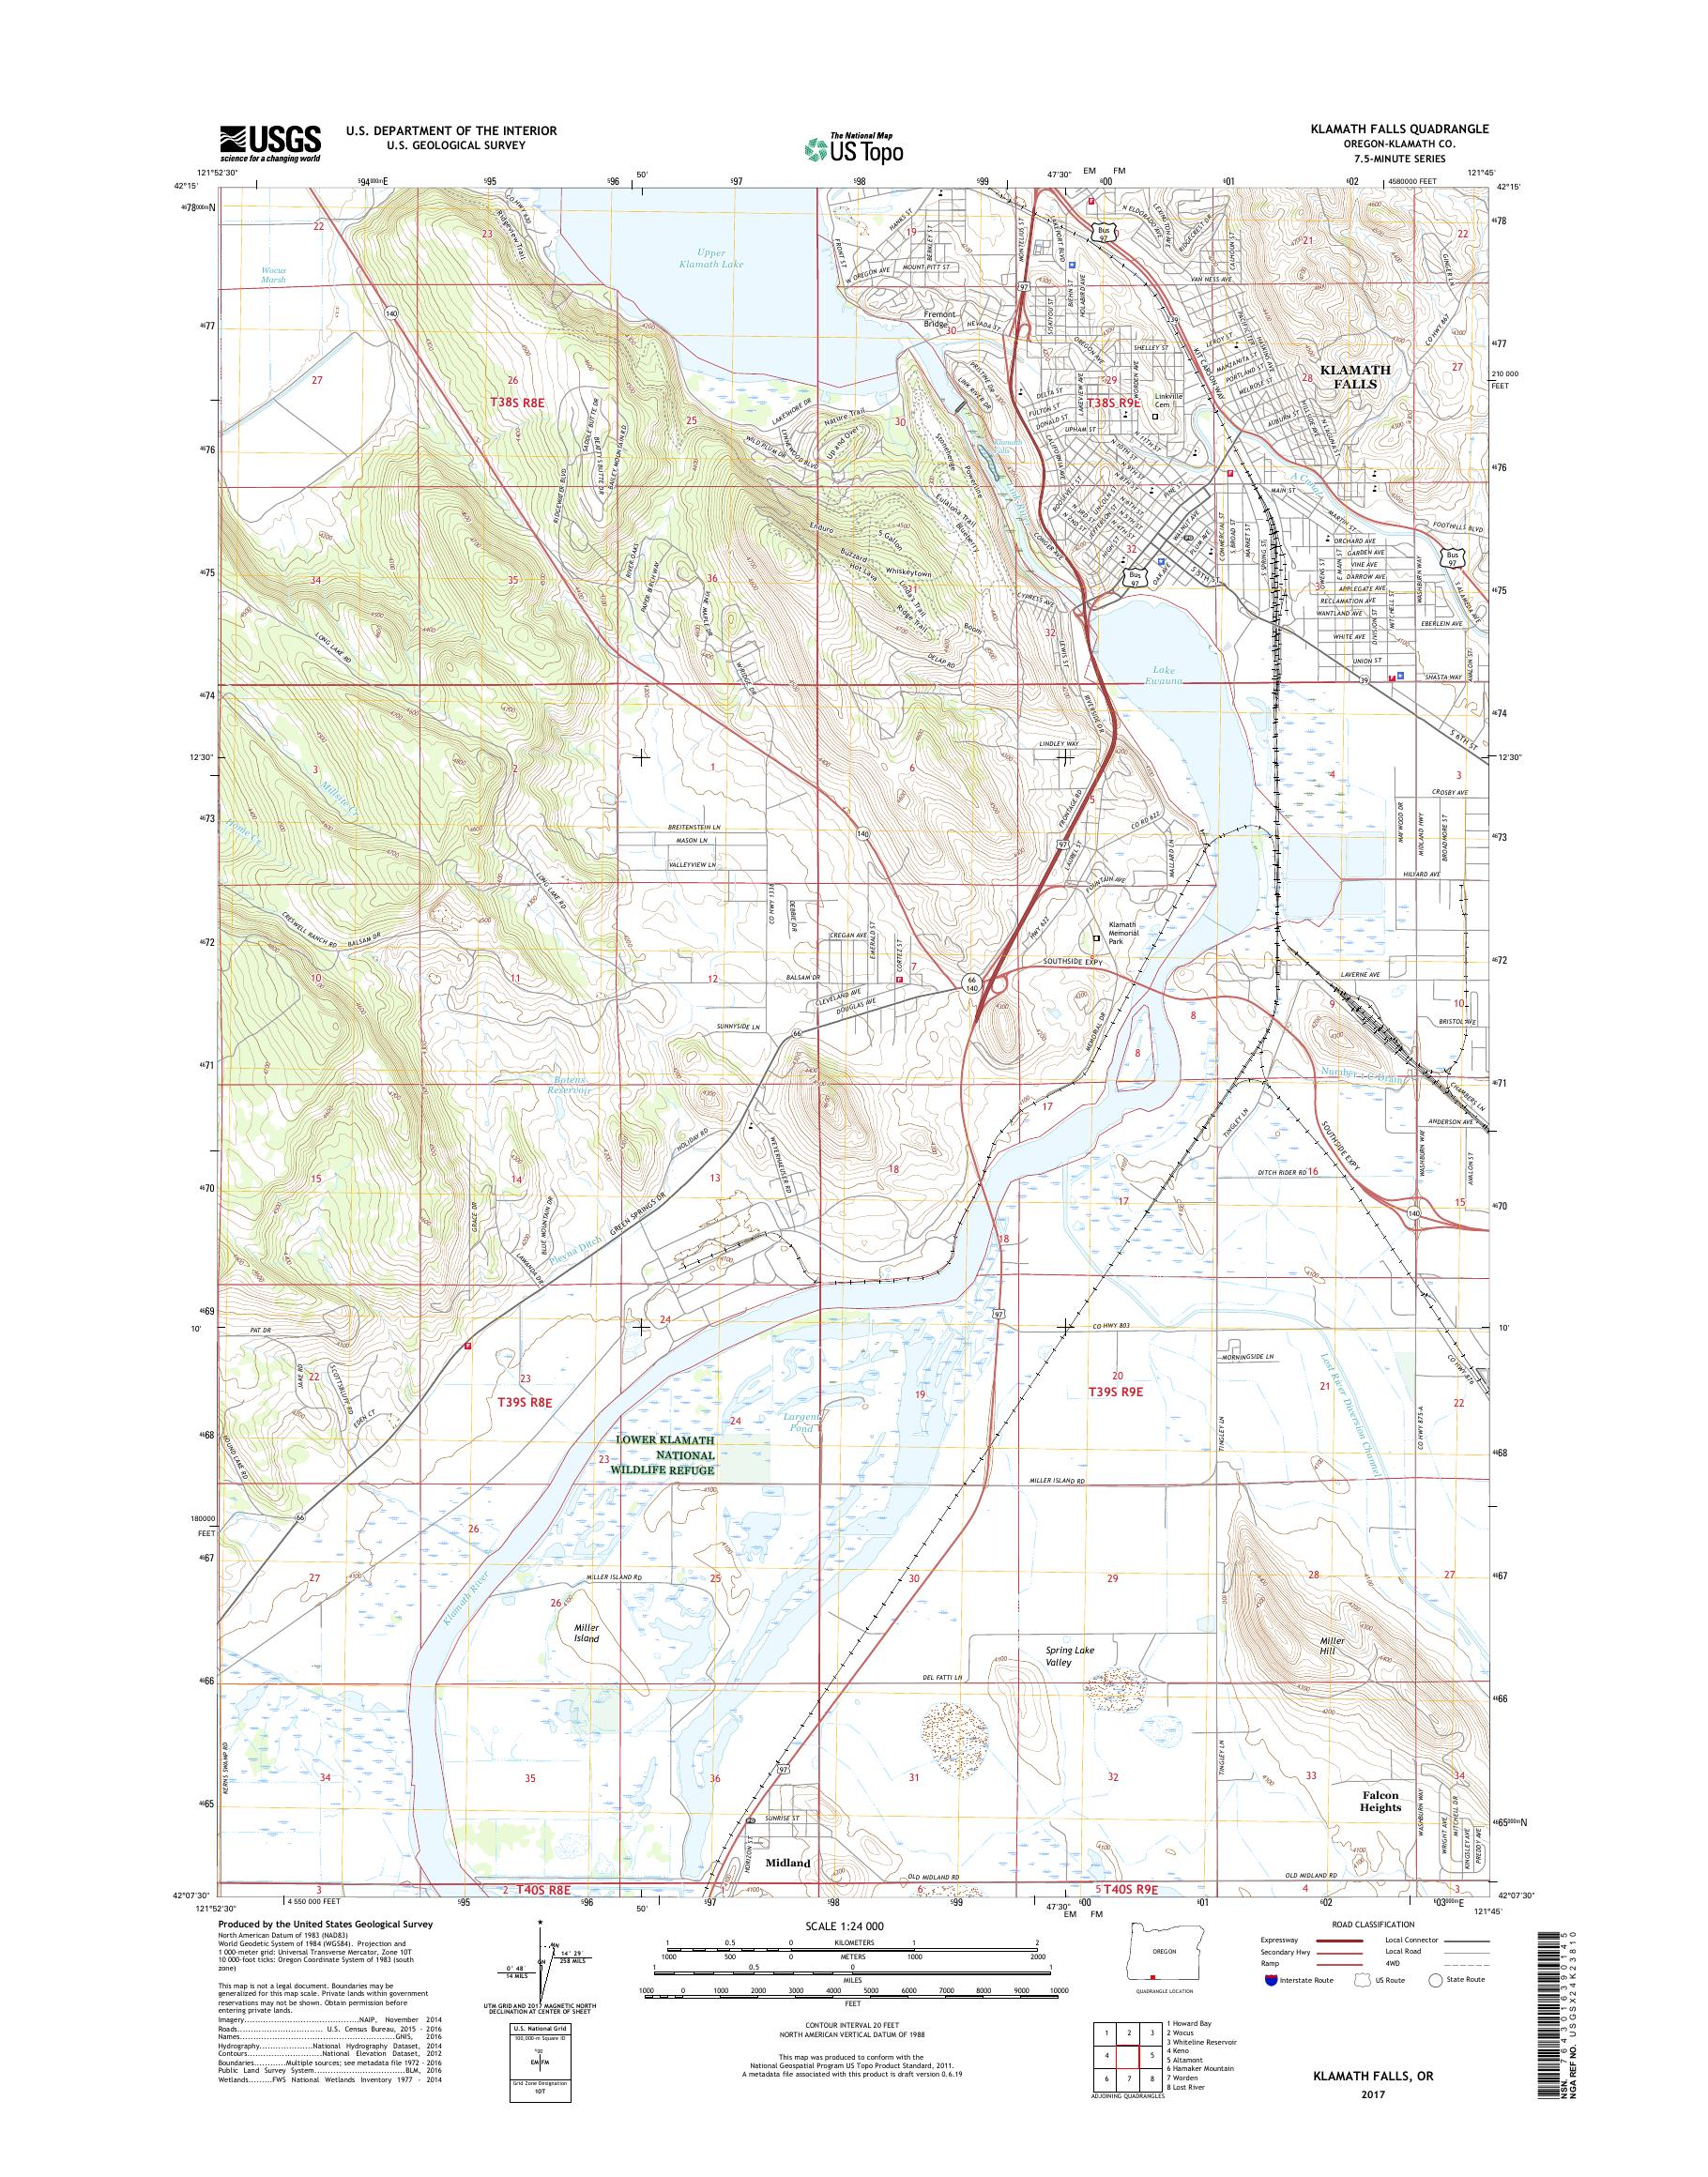 MyTopo Klamath Falls, Oregon USGS Quad Topo Map on corvallis or map, milton freewater or map, culver or map, lake county or map, douglas county or map, waldport or map, medford or map, mitchell or map, eugene or map, lane county or map, brookings or map, bend or map, roseburg or map, tidewater or map, huntington or map, hermiston or map, hood river or map, lakeview or map, boring or map, prineville or map,